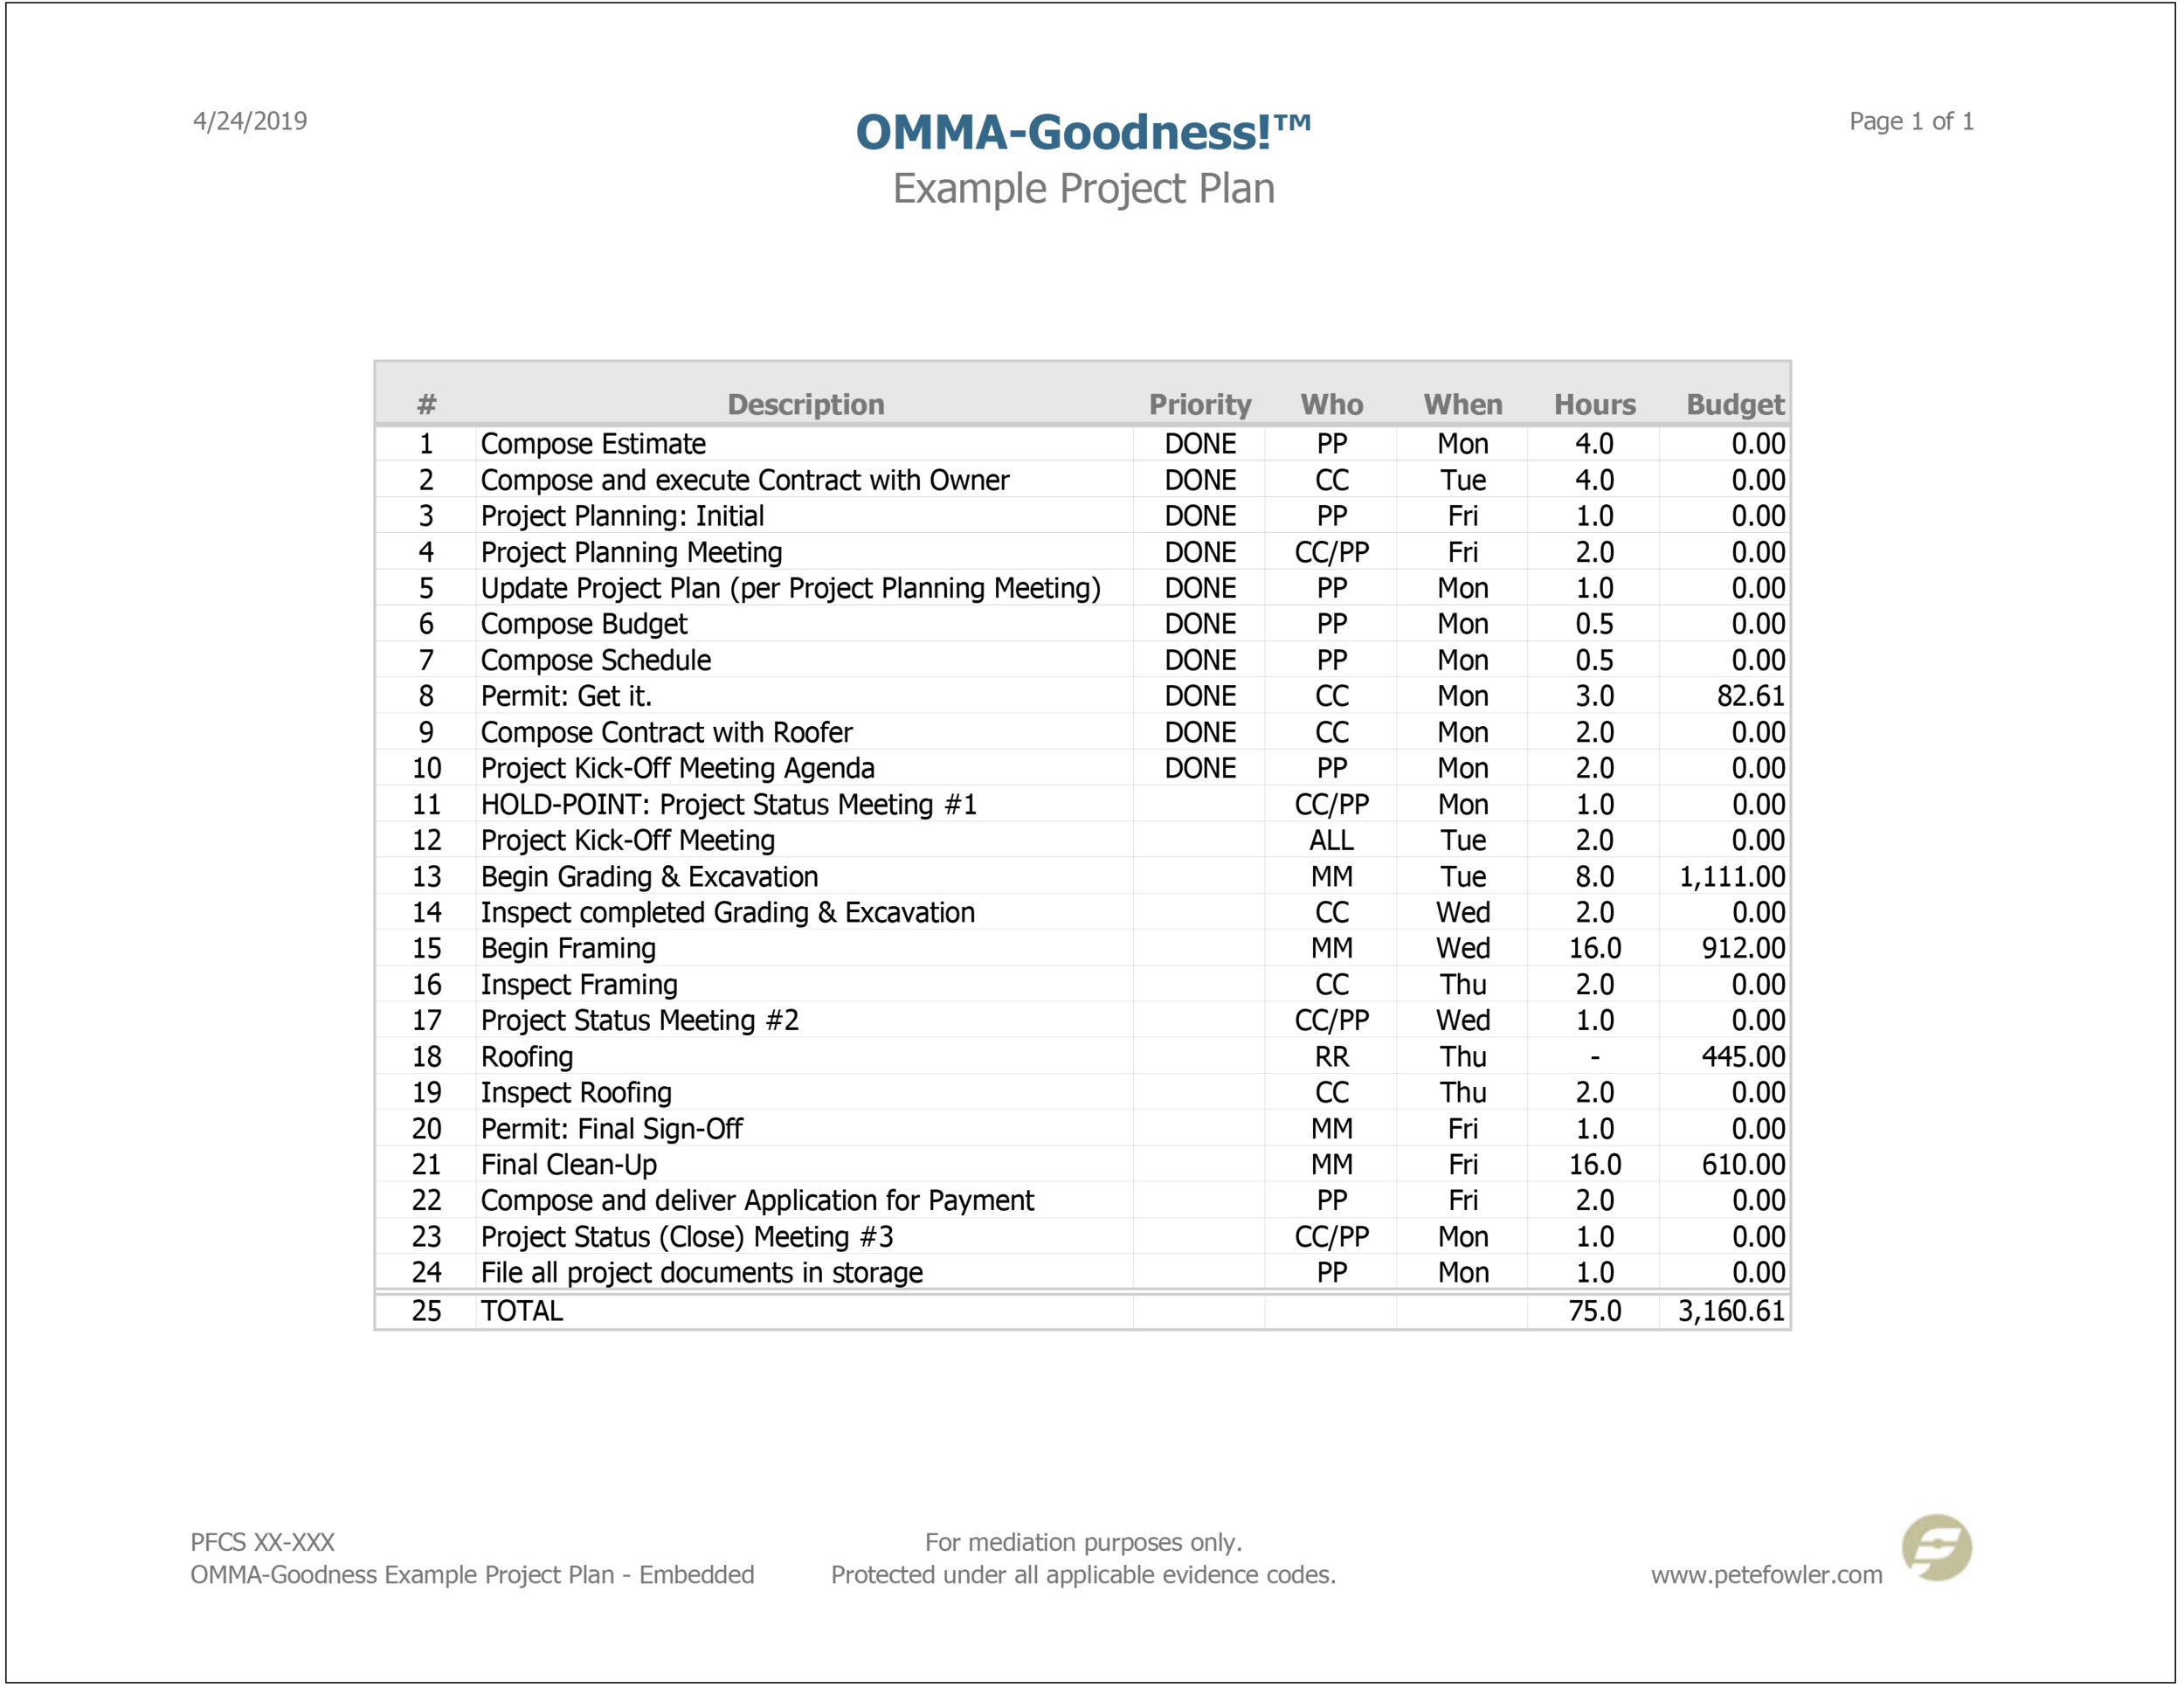 OMMA-Goodness Example Project Plan - Embedded.png